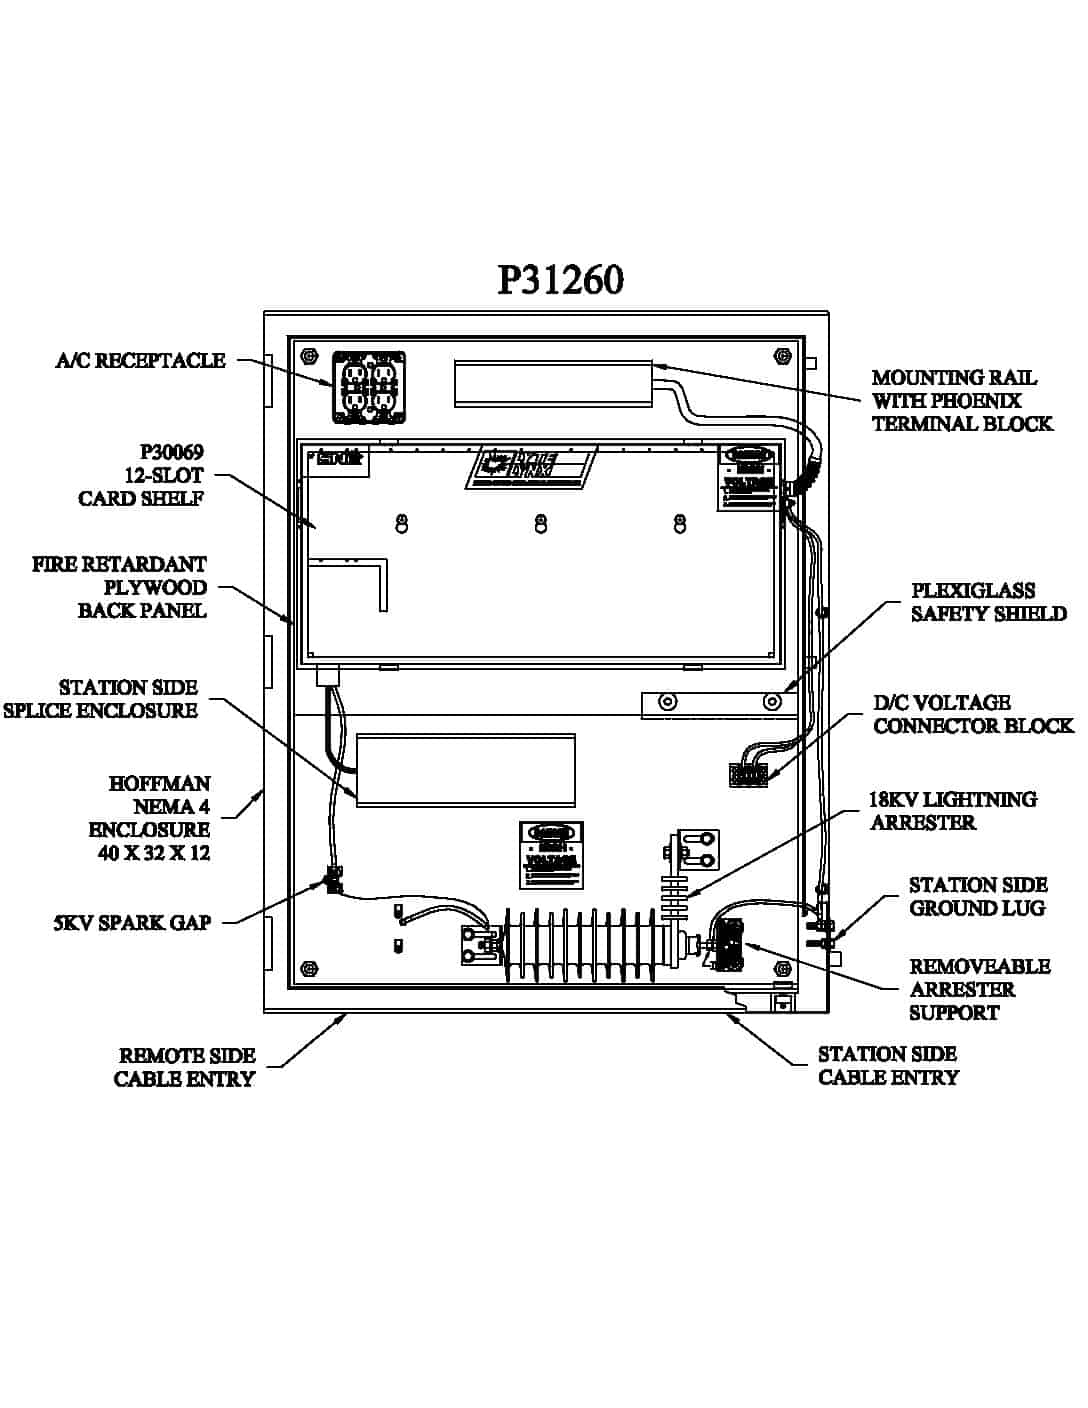 P31260 Turnkey Protection Packages – 12 slot PDF thumbnail